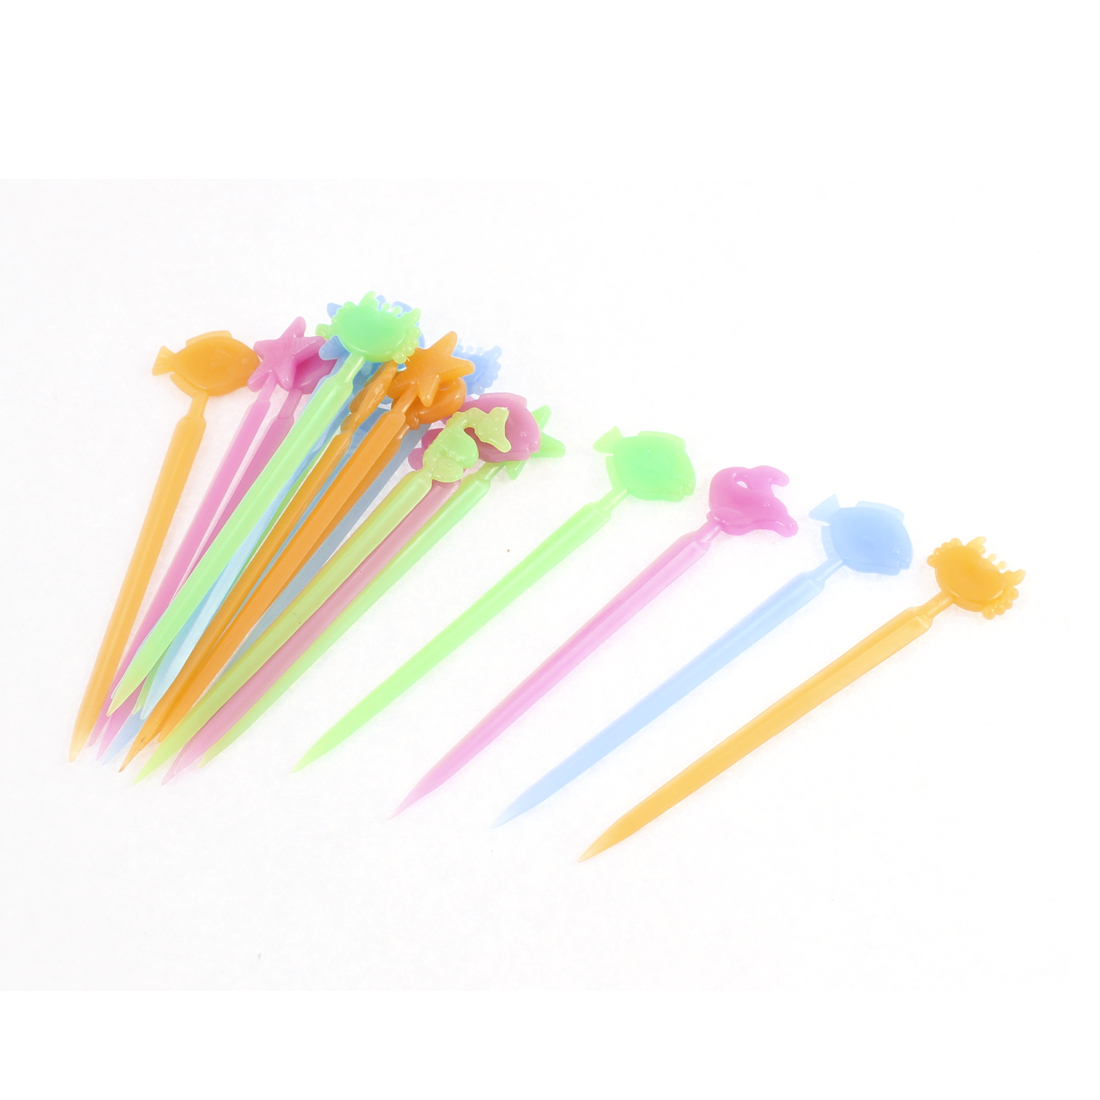 Party Food Fruit Pick Salad Dessert Picks Tip Tool Assorted Color 20pcs